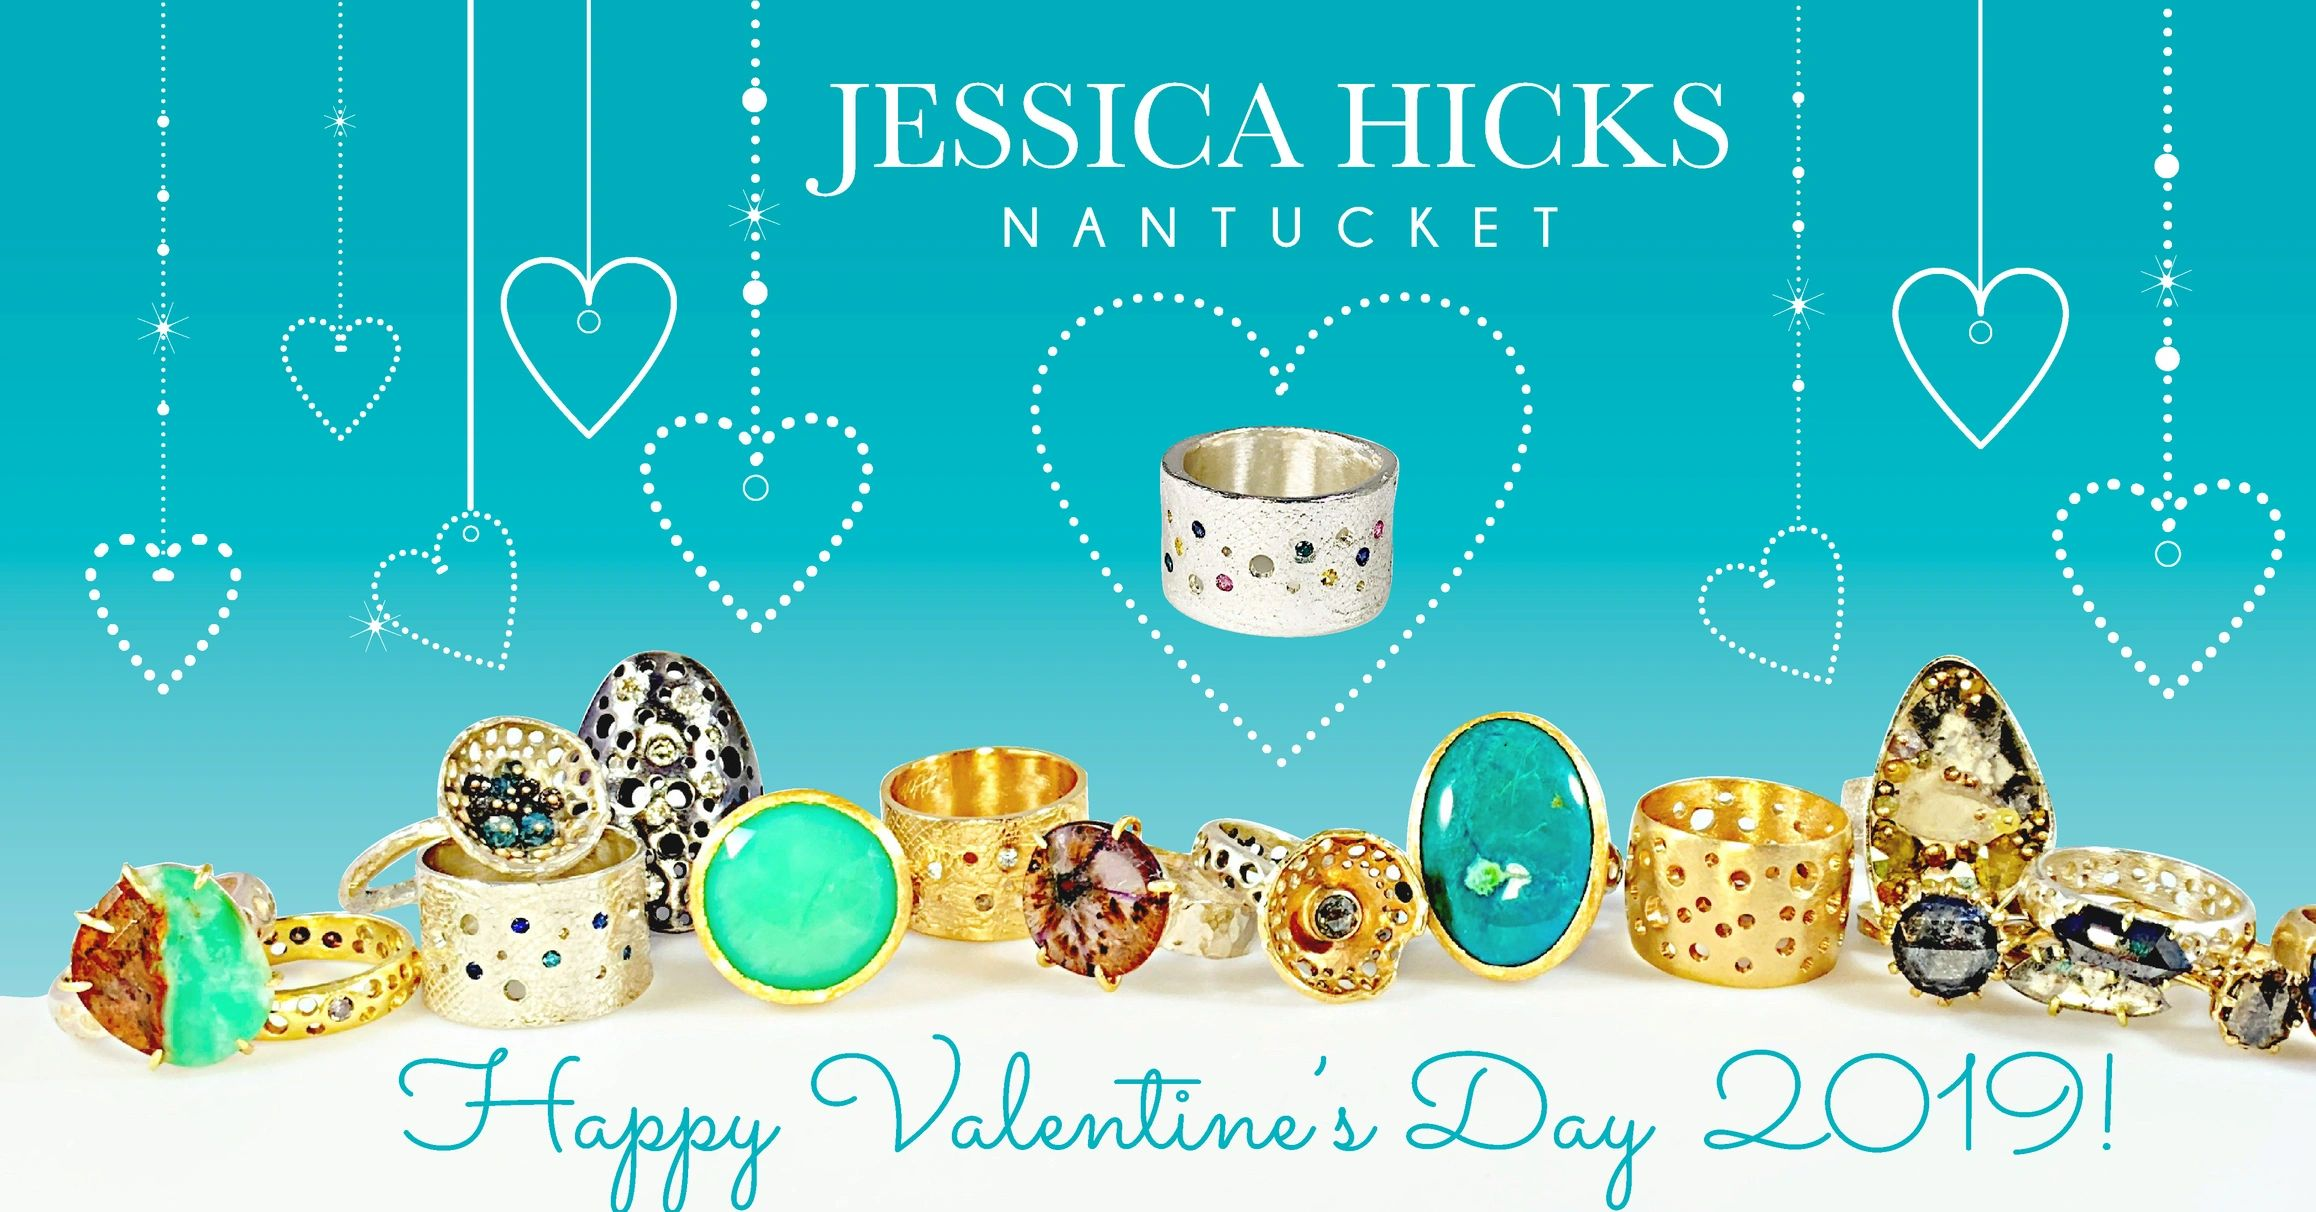 "{""blocks"":[{""key"":""48flo"",""text"":""Ad Design for Jessica Hicks Jewelry"",""type"":""unstyled"",""depth"":0,""inlineStyleRanges"":[],""entityRanges"":[],""data"":{}}],""entityMap"":{}}"